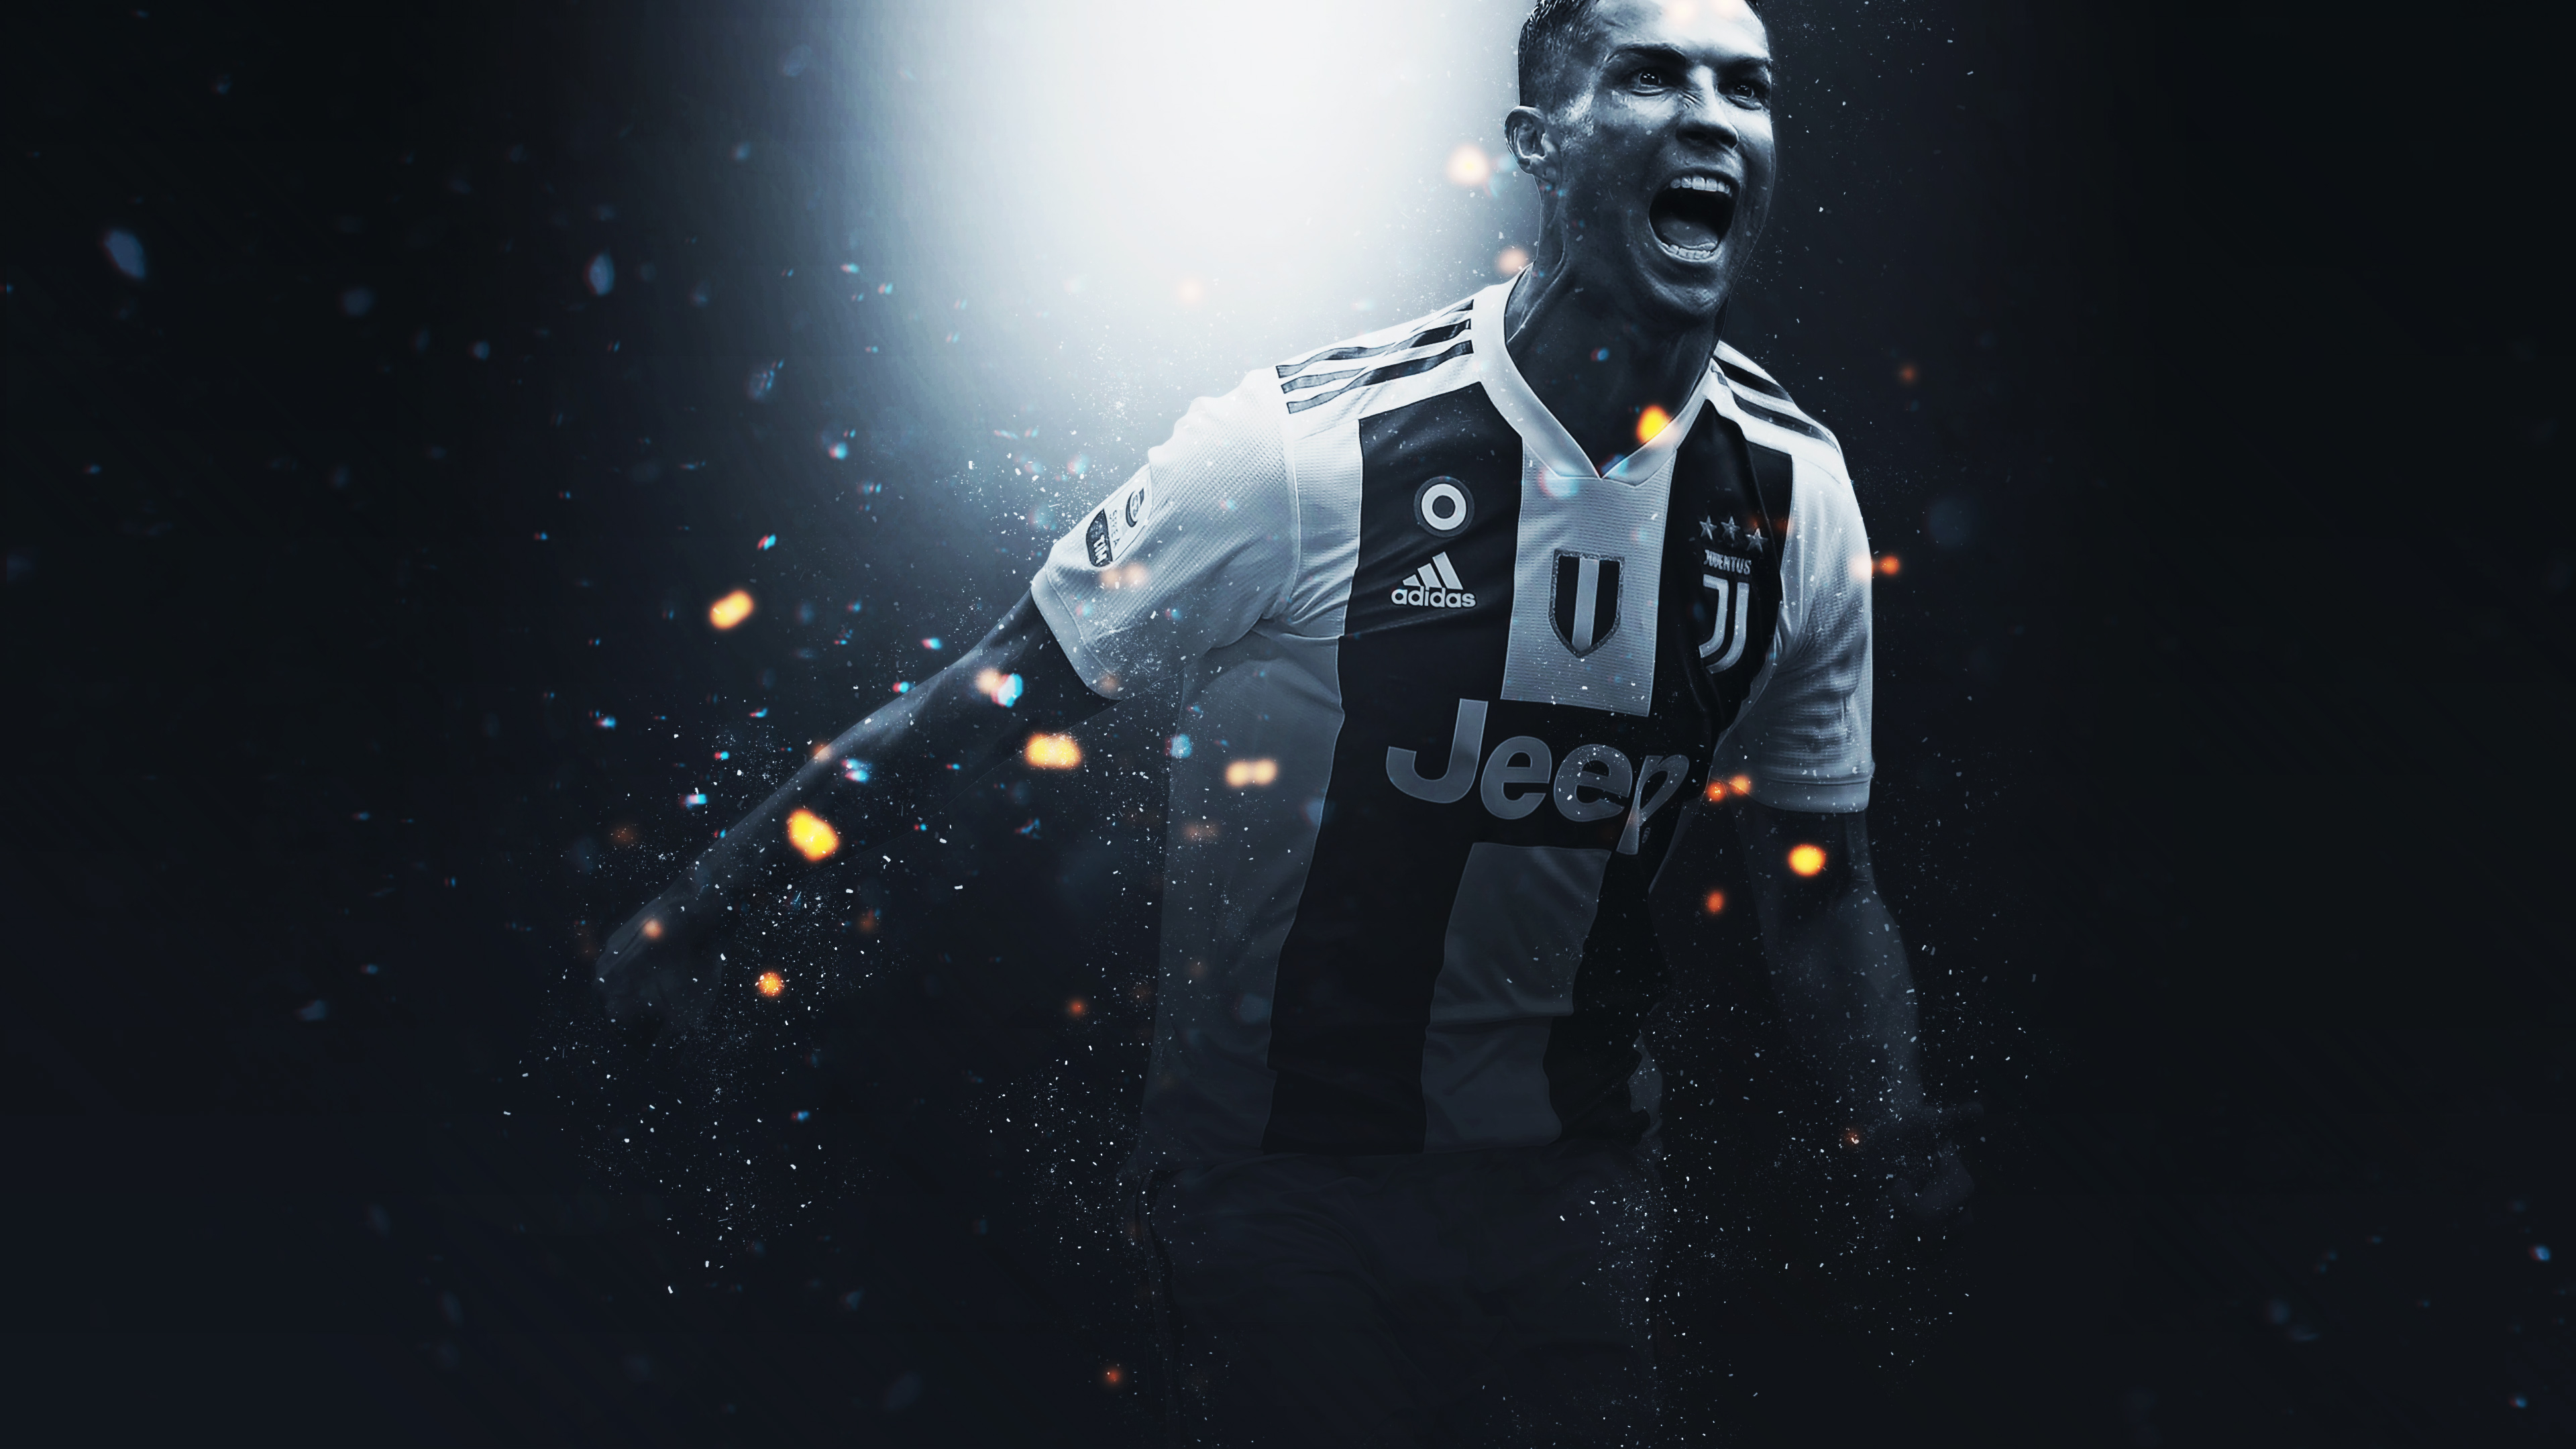 cristiano ronaldo juventus fc 1547938899 - Cristiano Ronaldo Juventus FC - sports wallpapers, hd-wallpapers, football wallpapers, cristiano ronaldo wallpapers, 4k-wallpapers